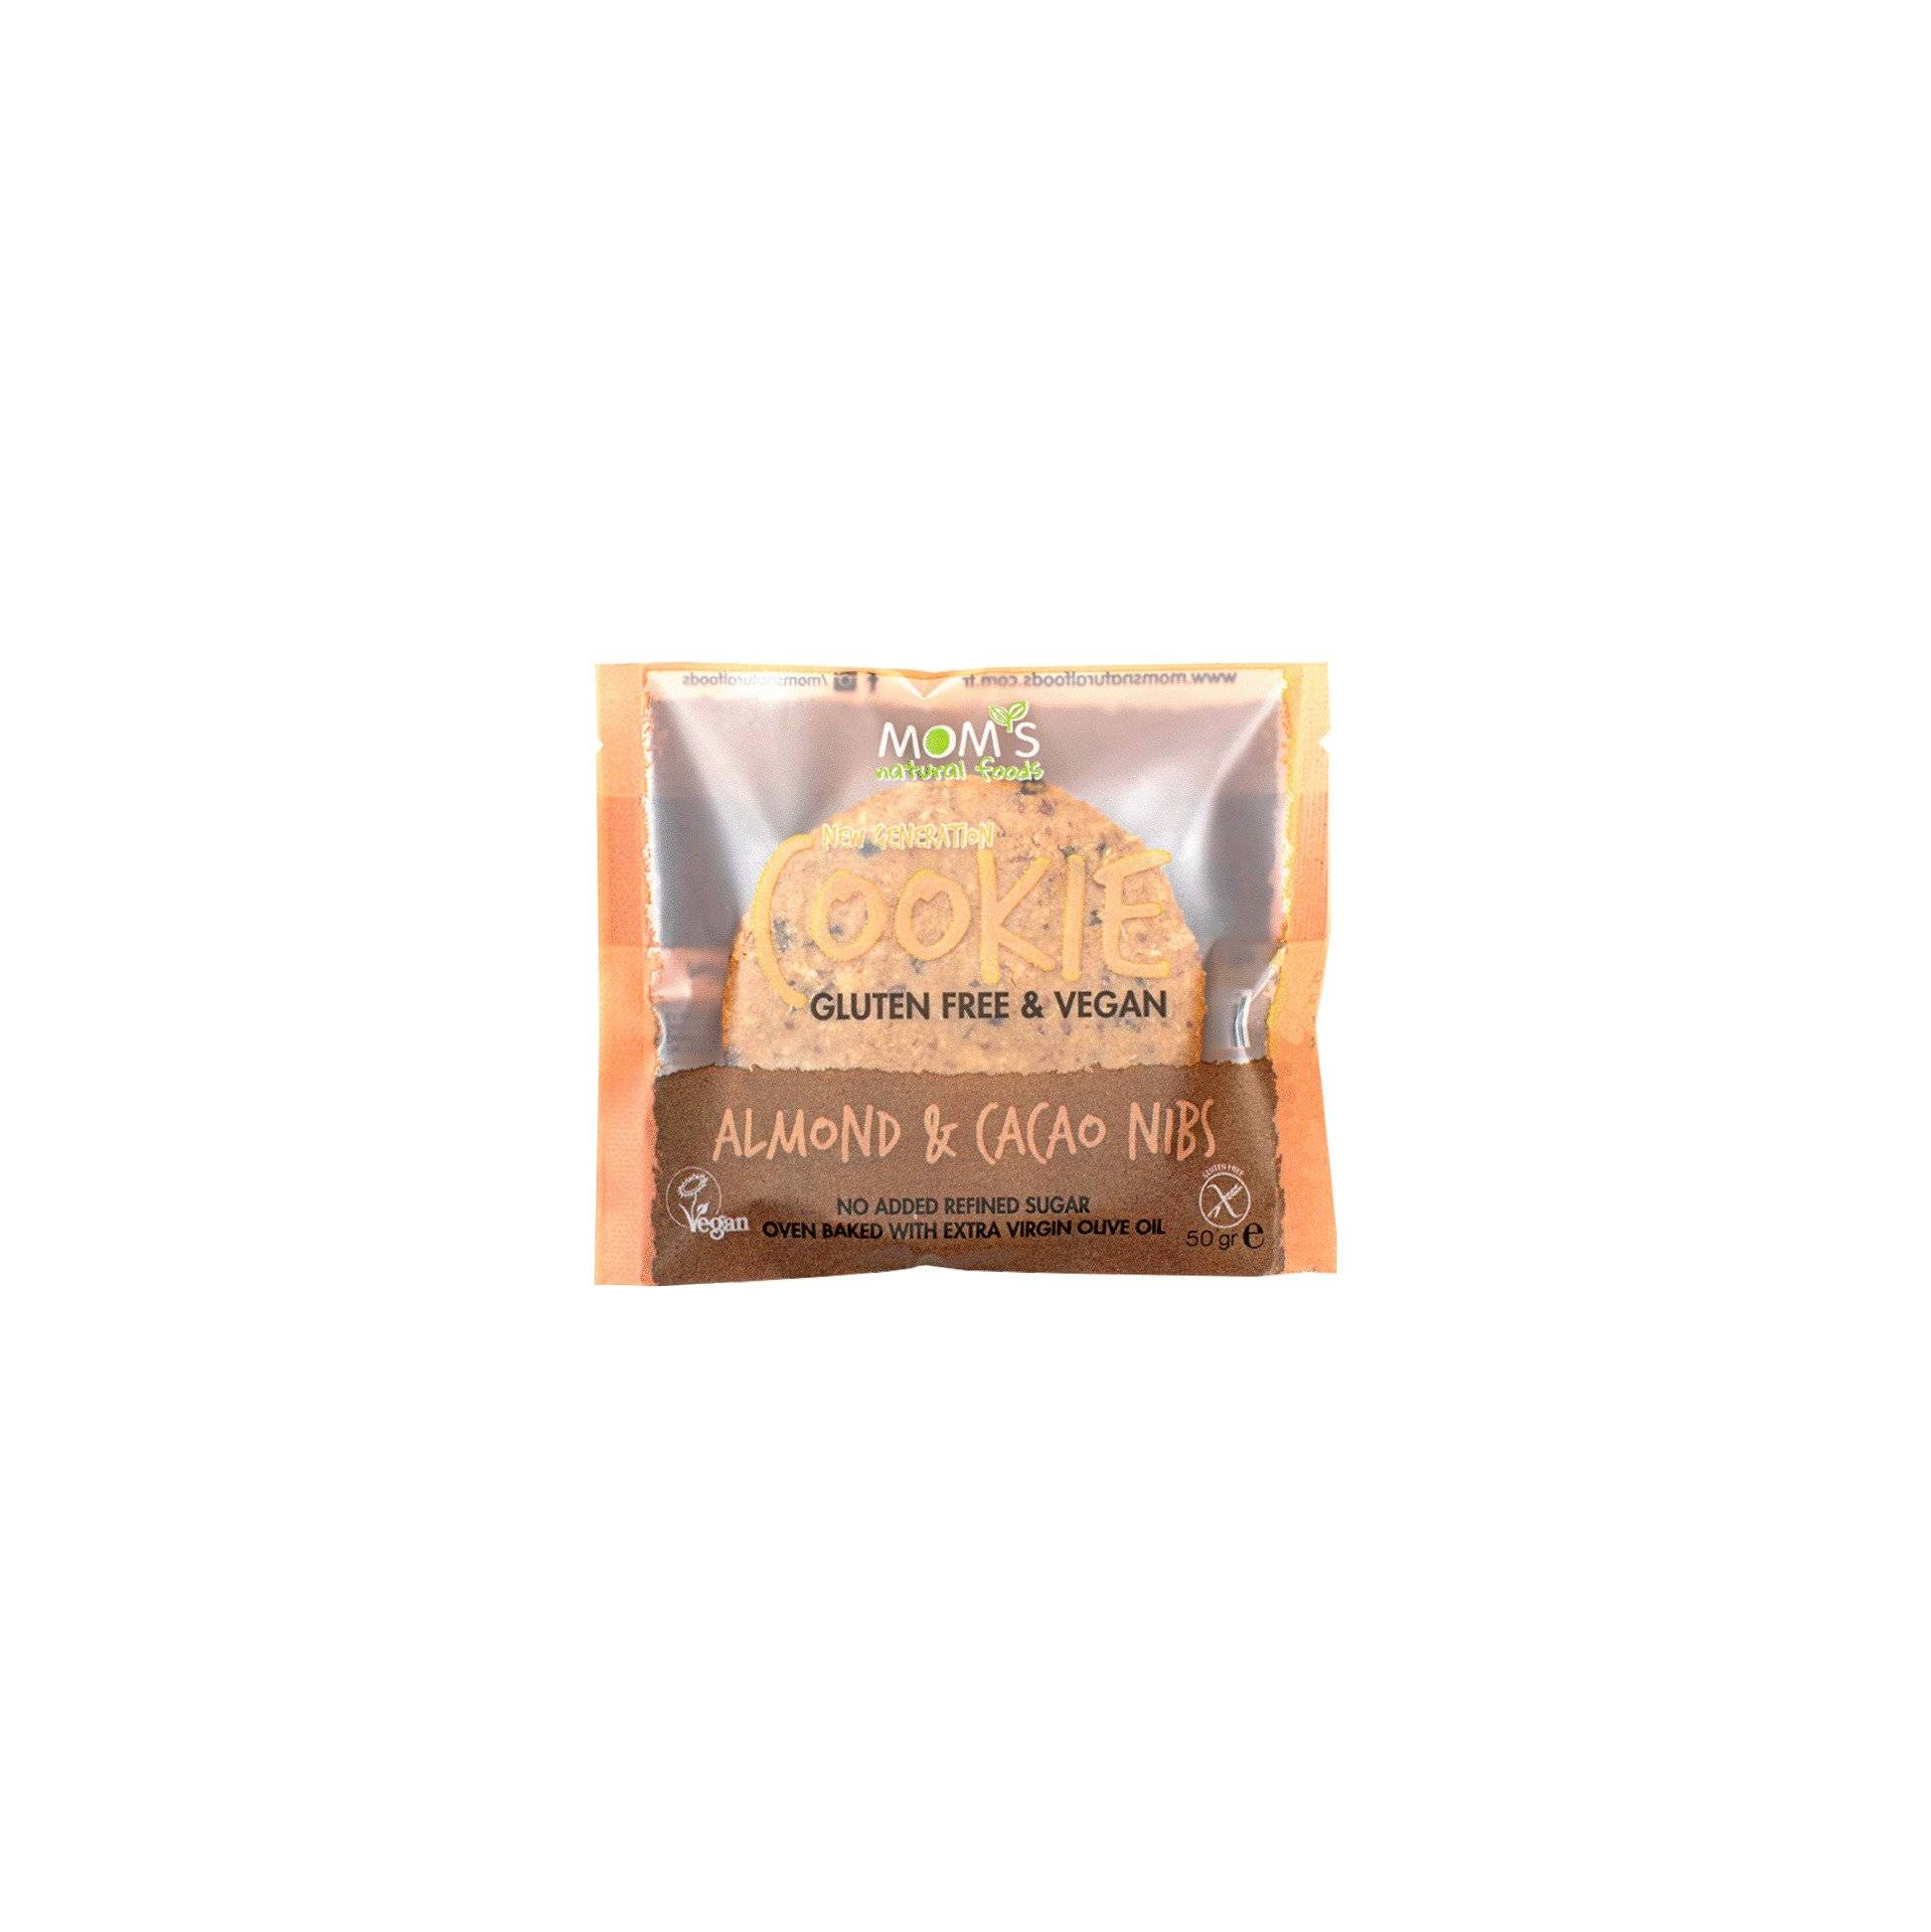 Gluten Free&Vegan Migdale/Cacao Mom's, 50g